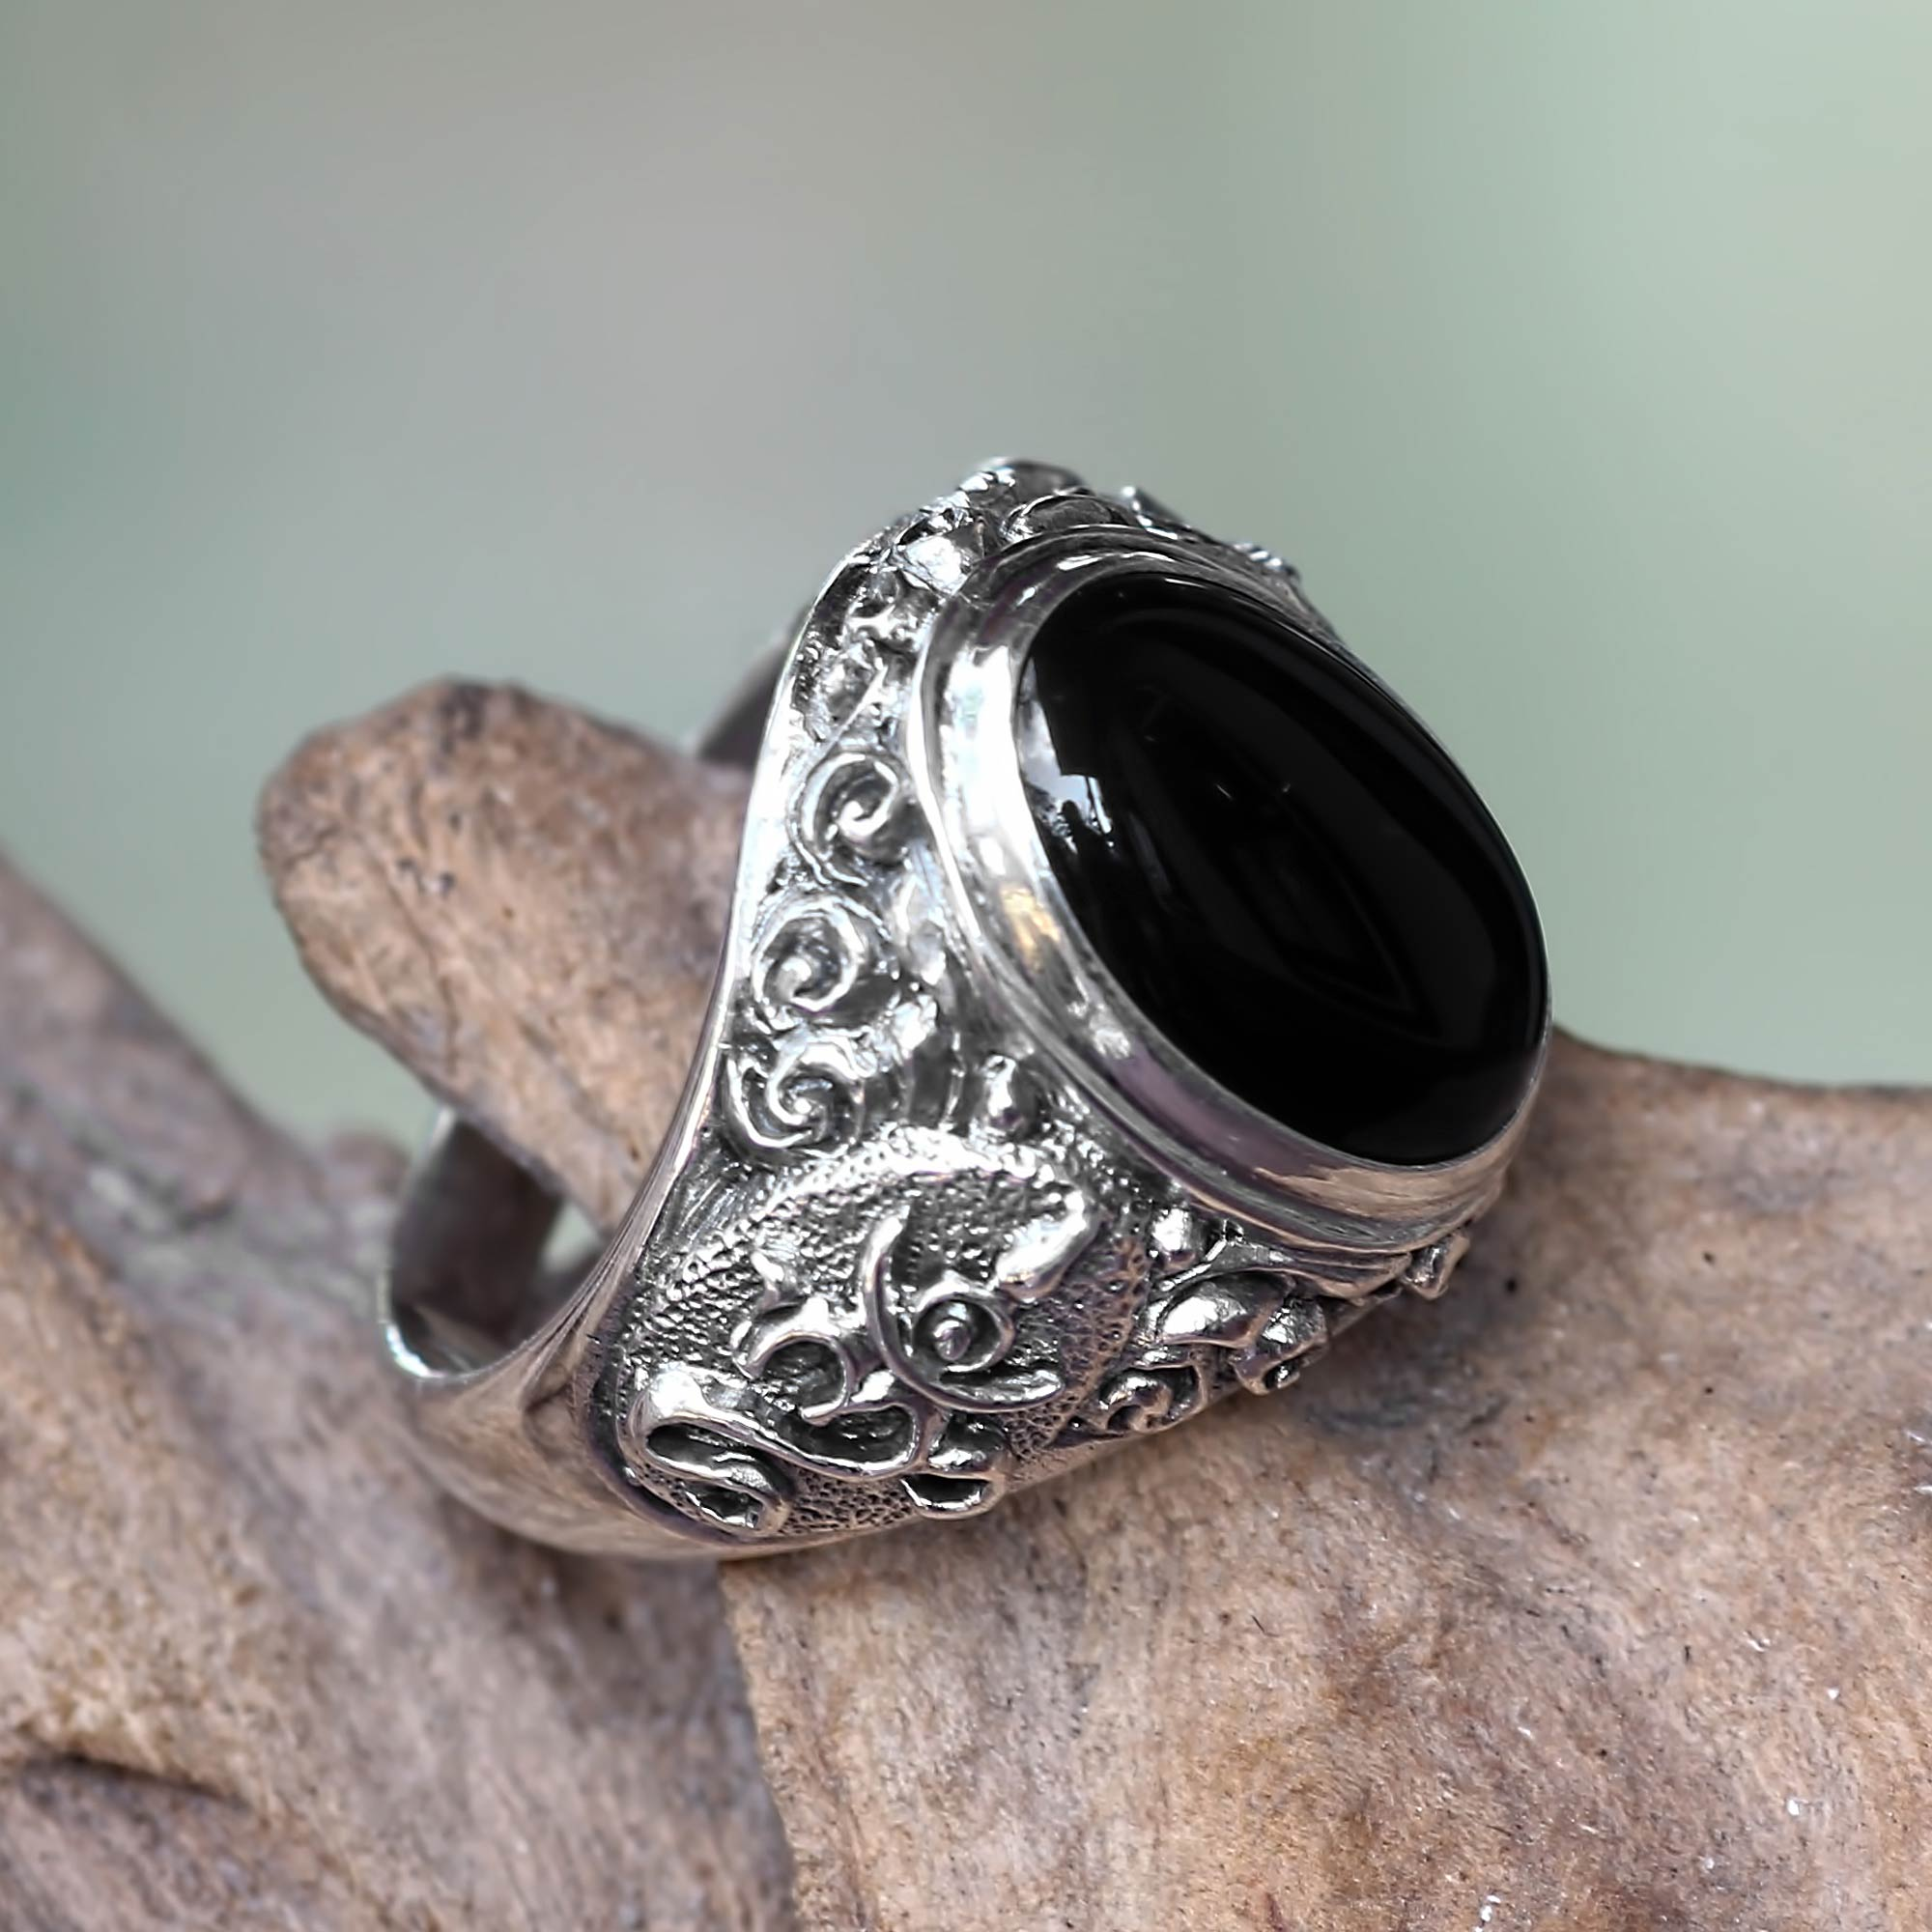 accessories merchandise collectibles props rings silver category souls categories red jew buy power online dark product ring